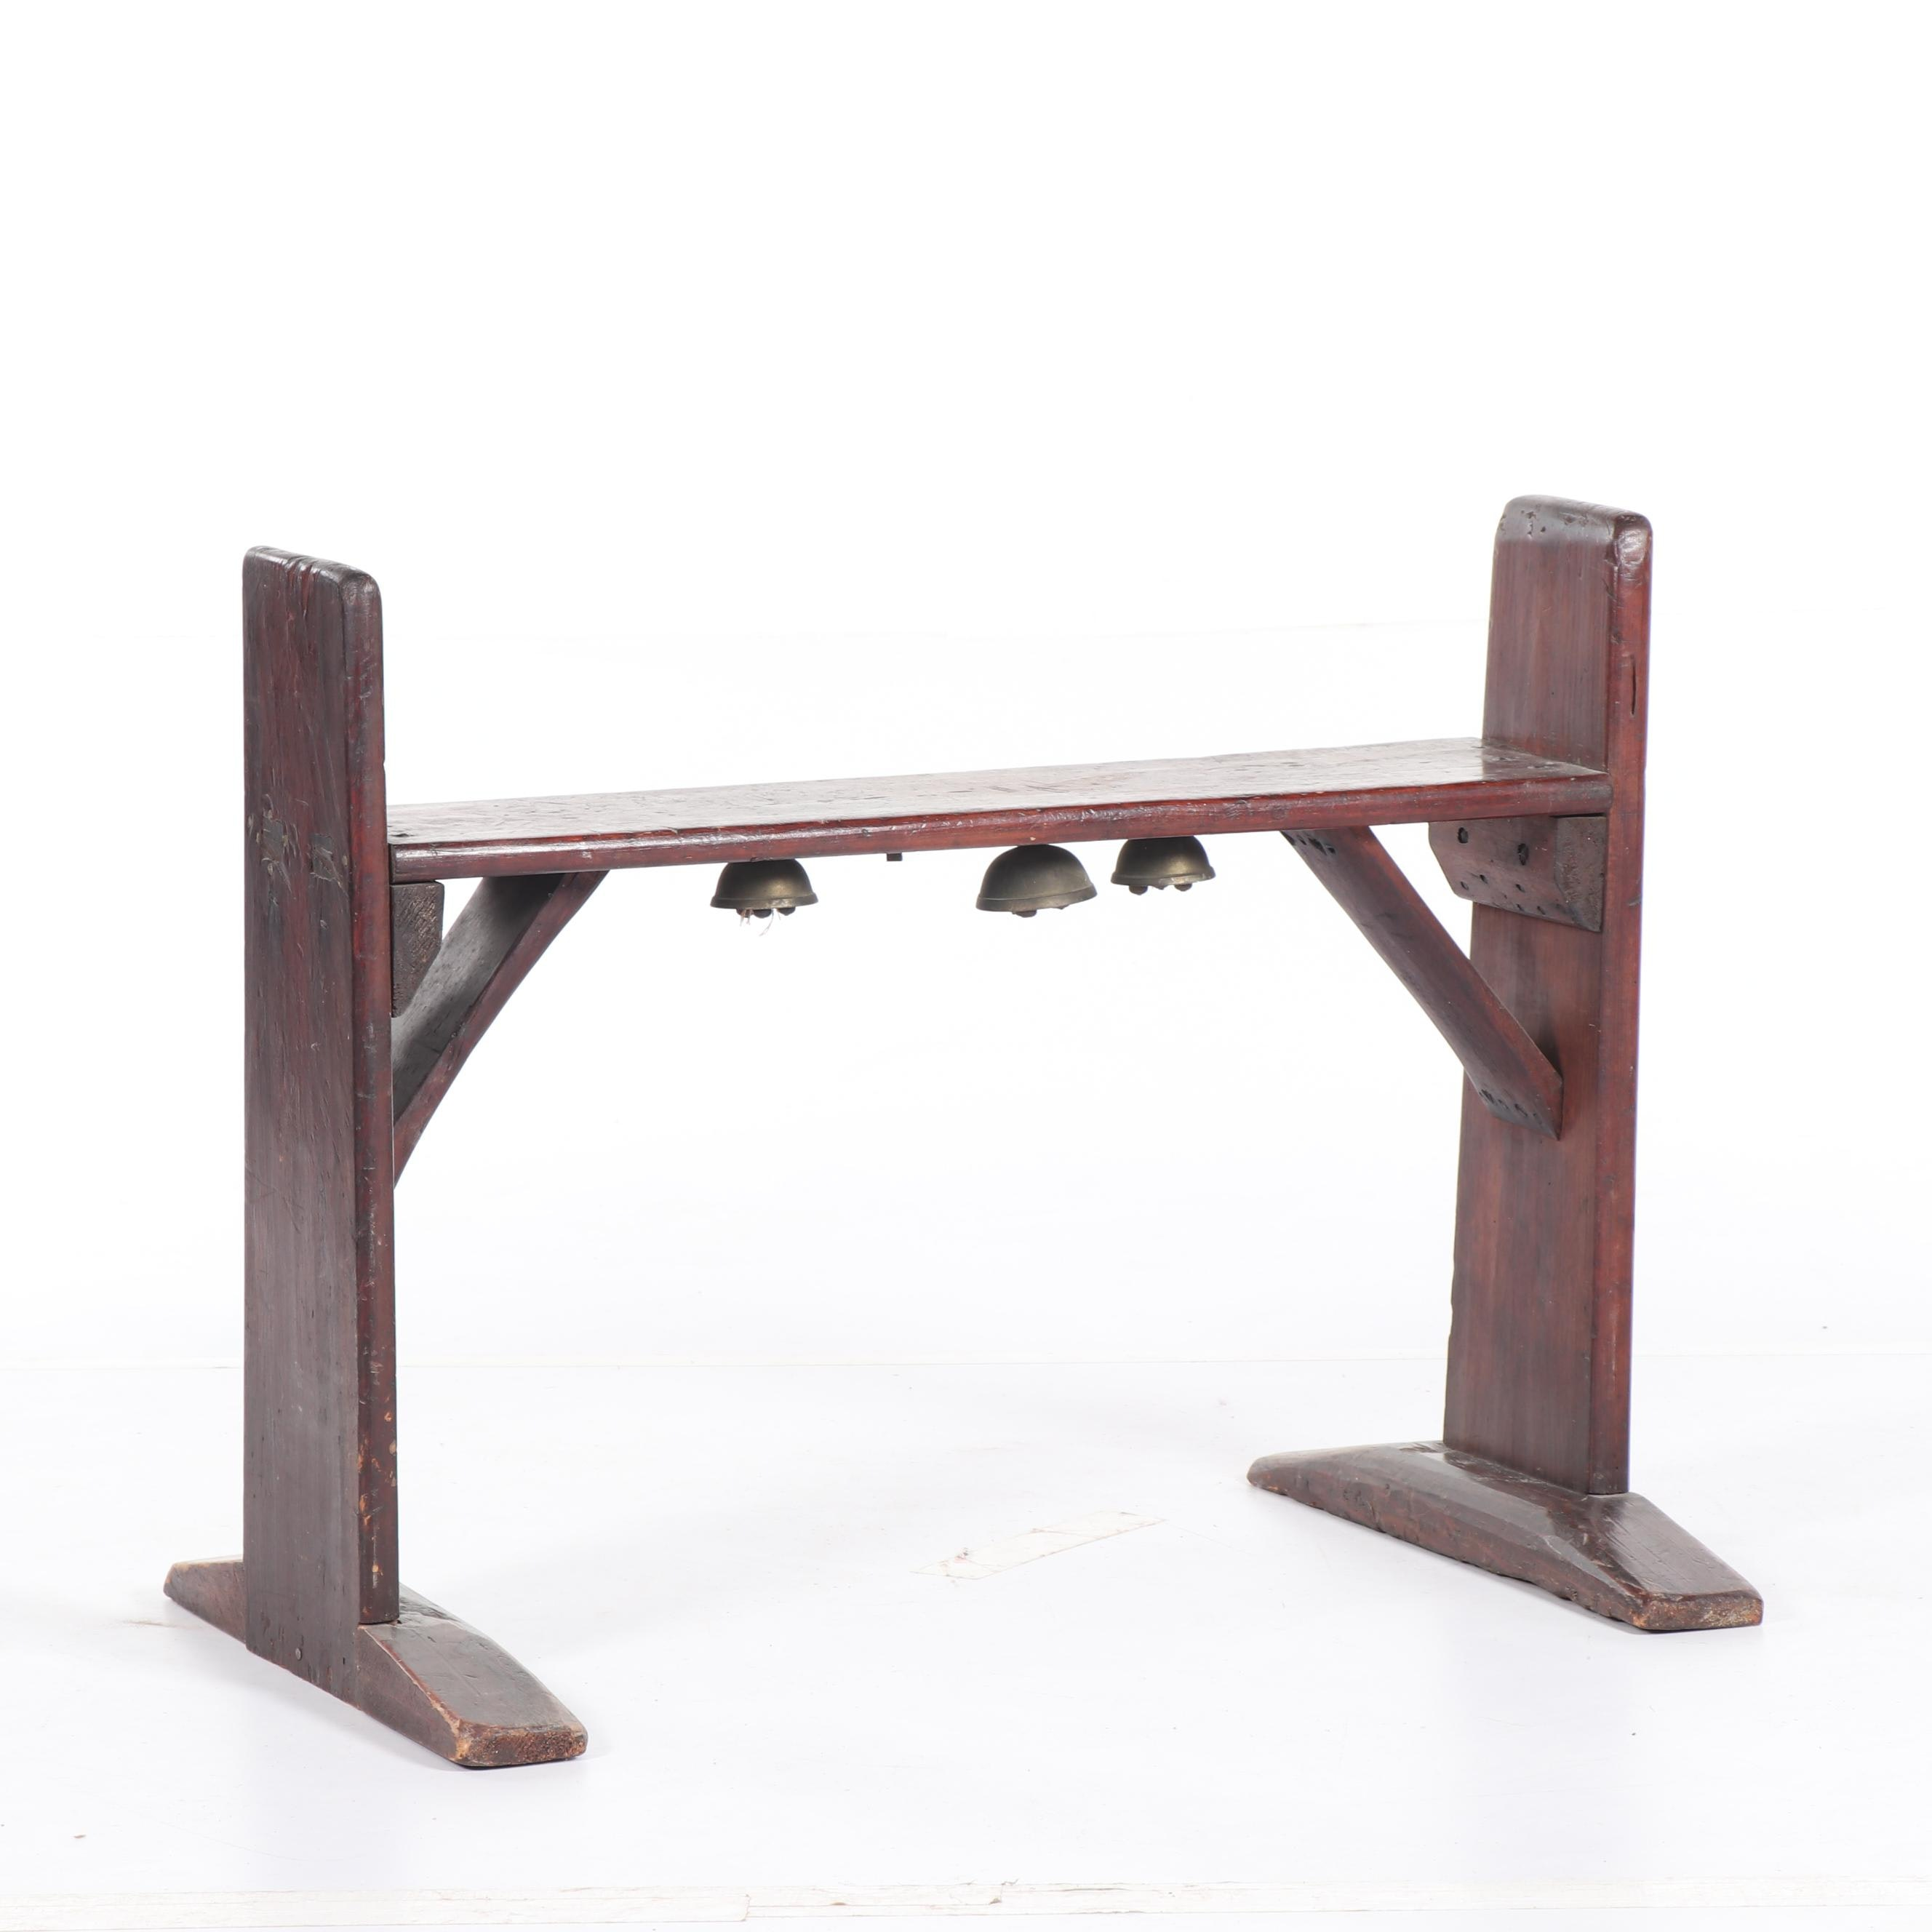 Japanese Style Wooden Table or Bench with Bells, 19th/20th Century